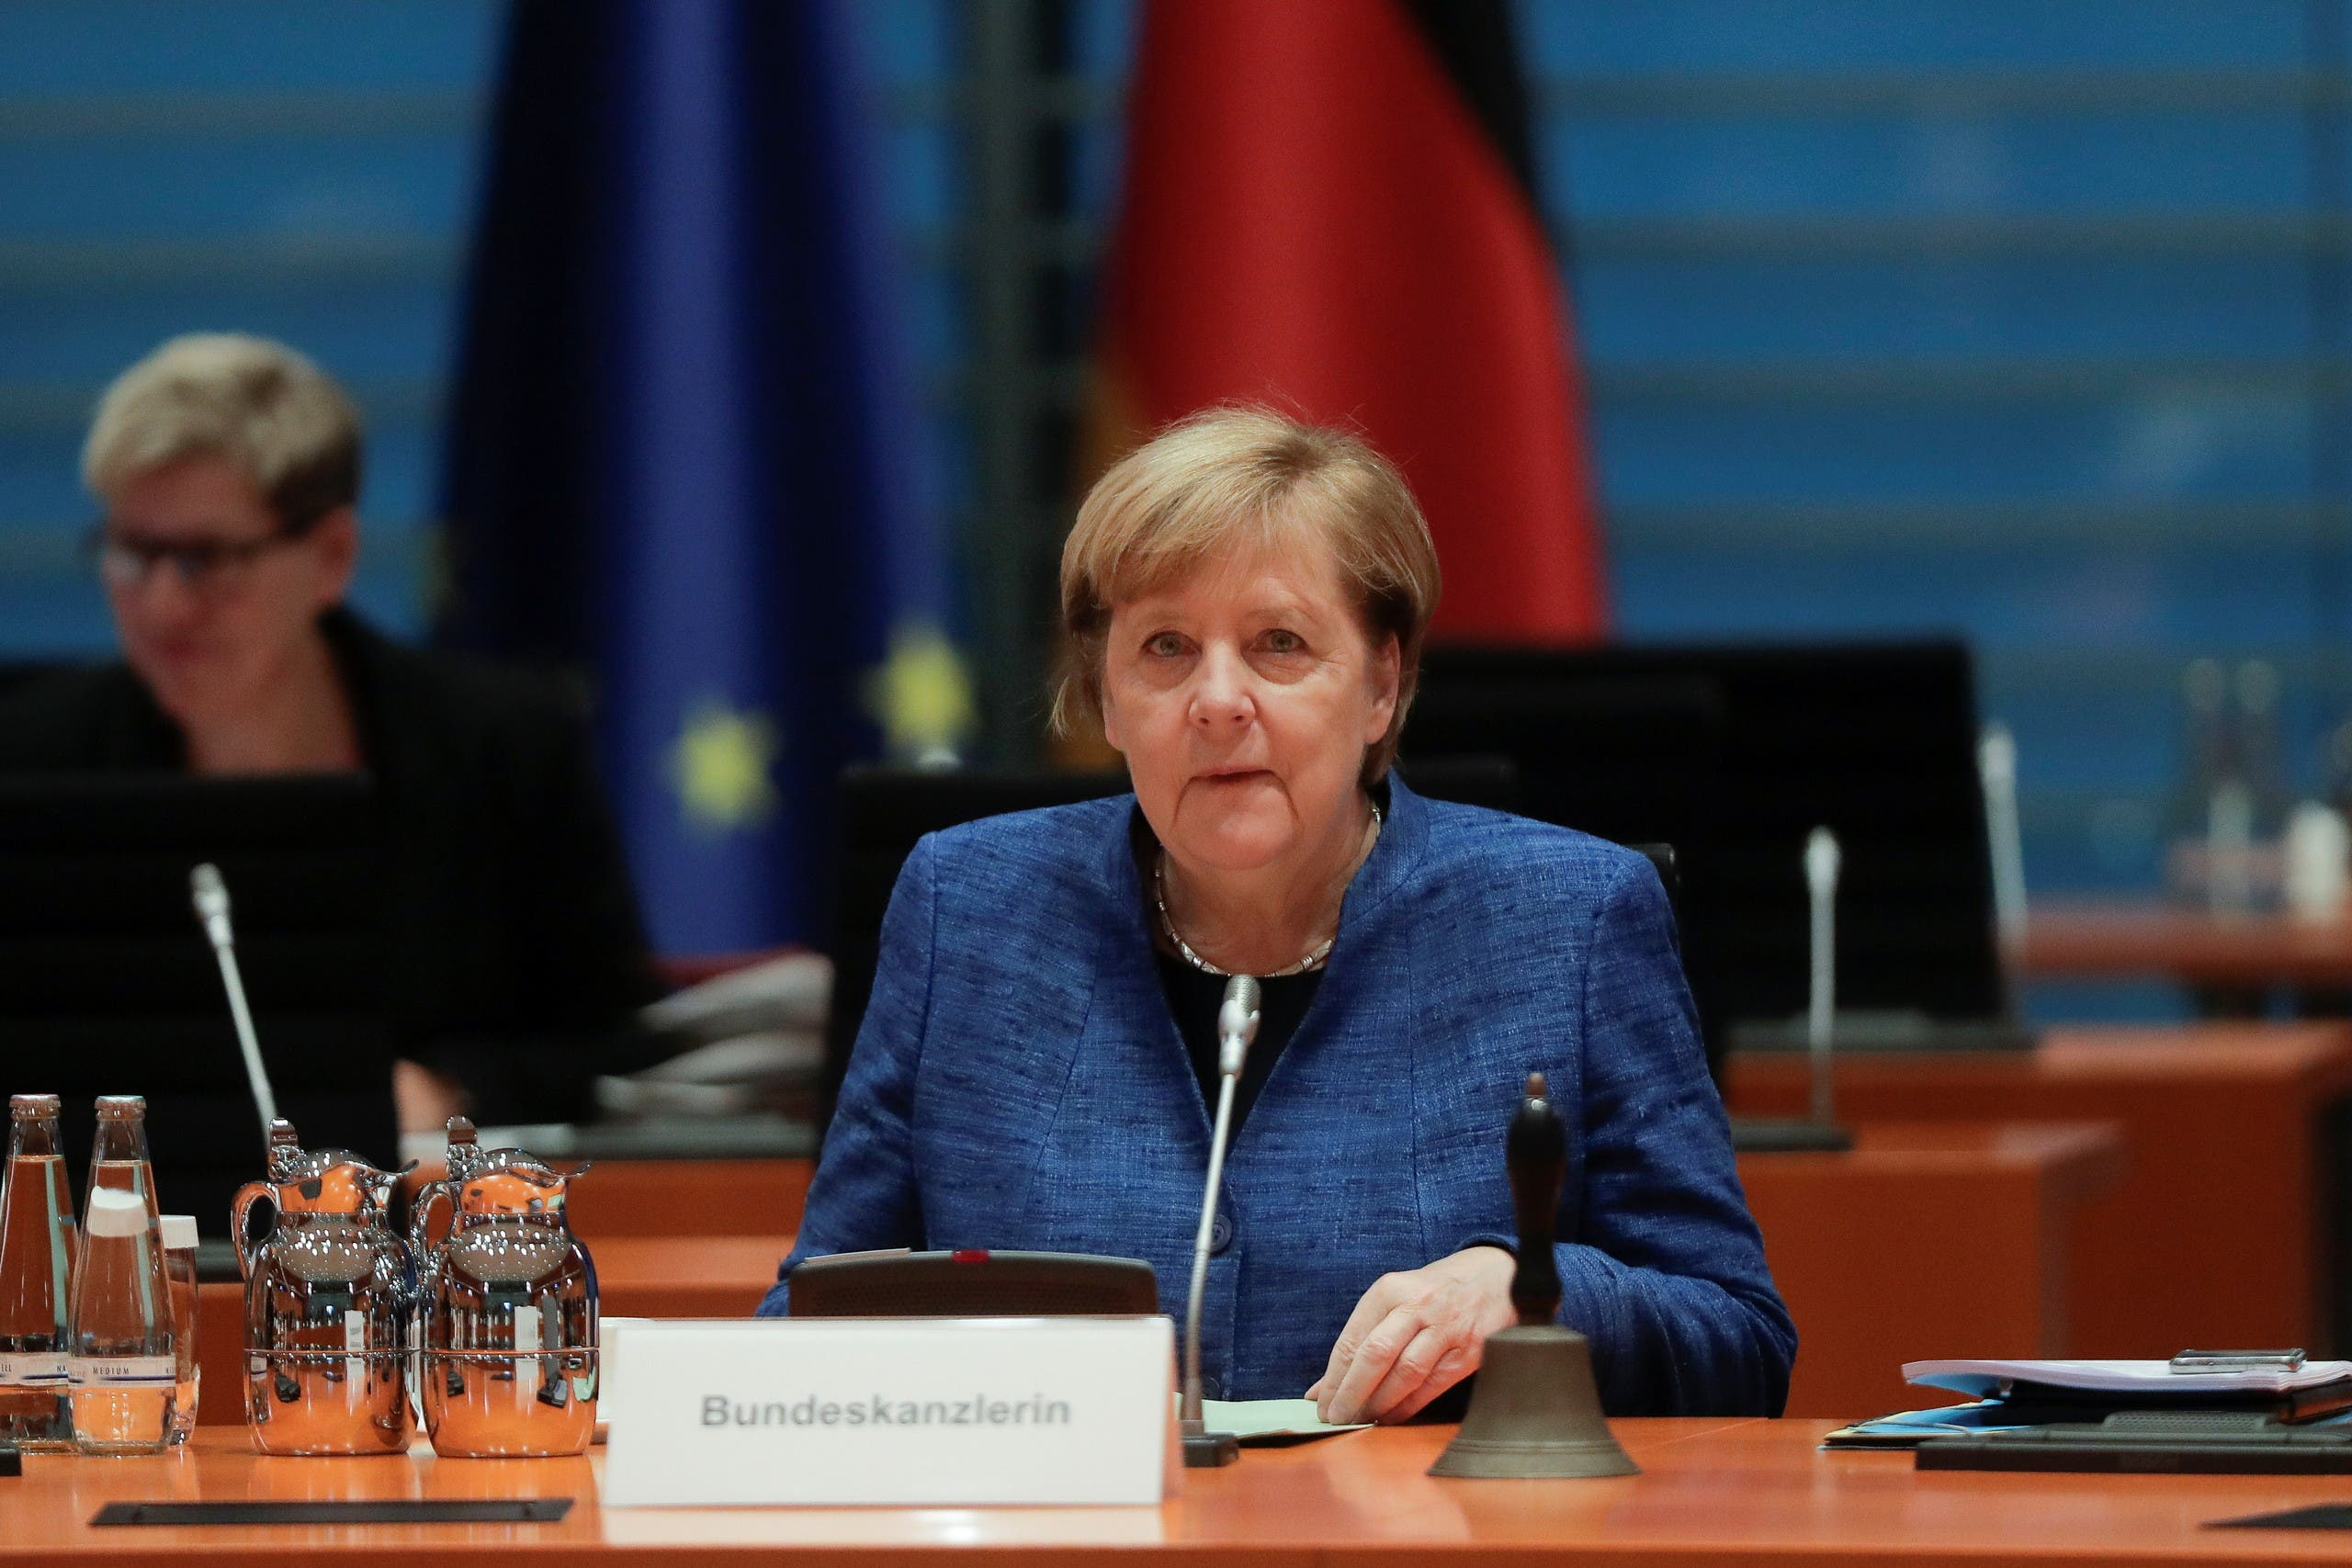 German Chancellor Angela Merkel arrives for the weekly cabinet meeting of the government at the chancellery in Berlin, Germany. (Reuters)